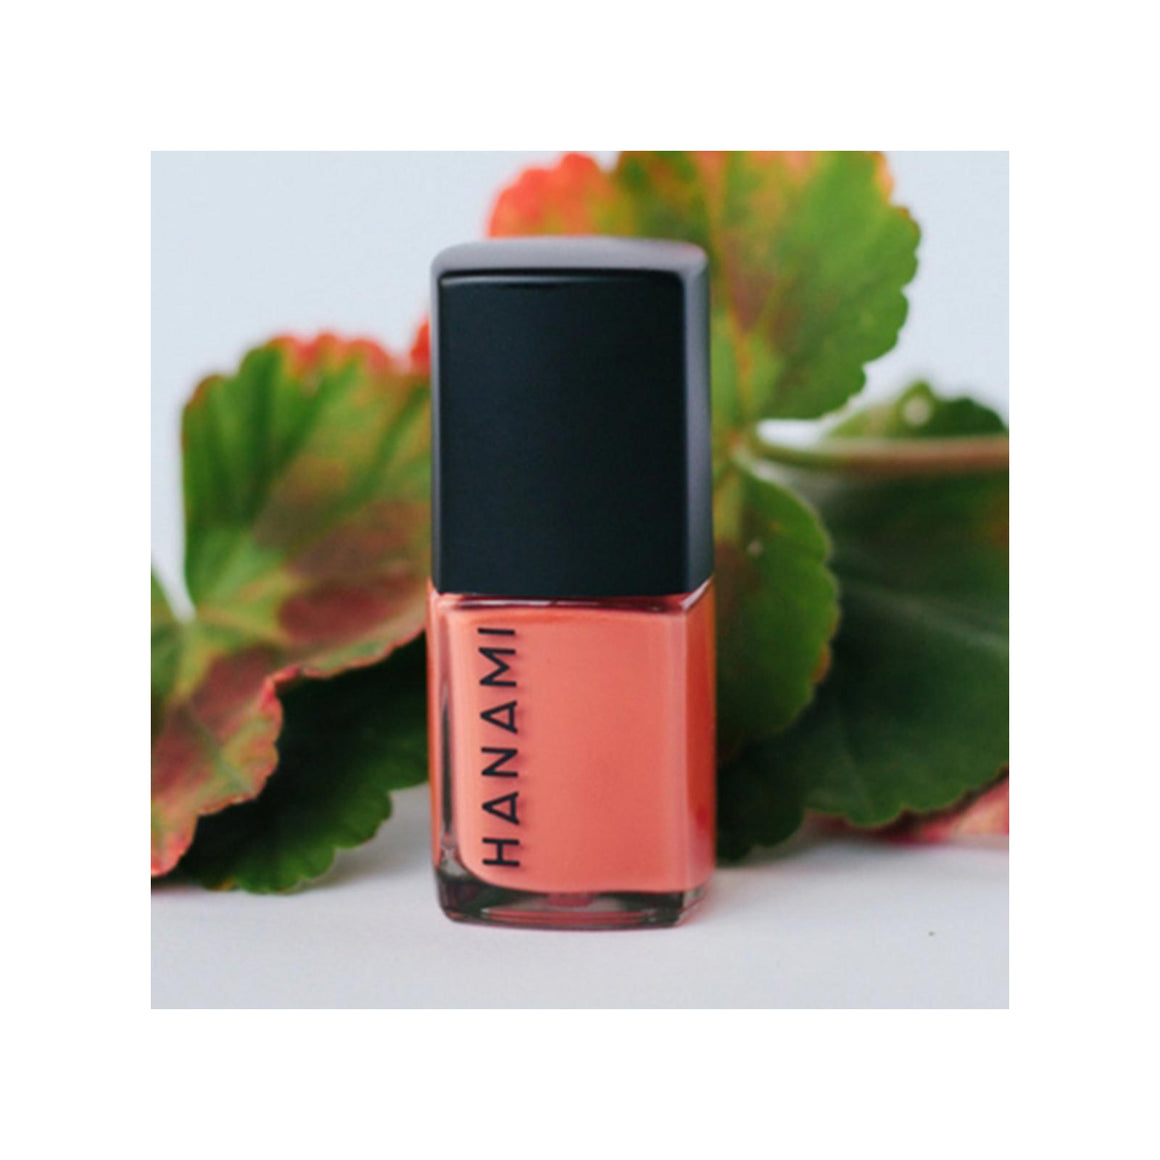 Hanami Cosmetics Nail Polish - Flame Trees